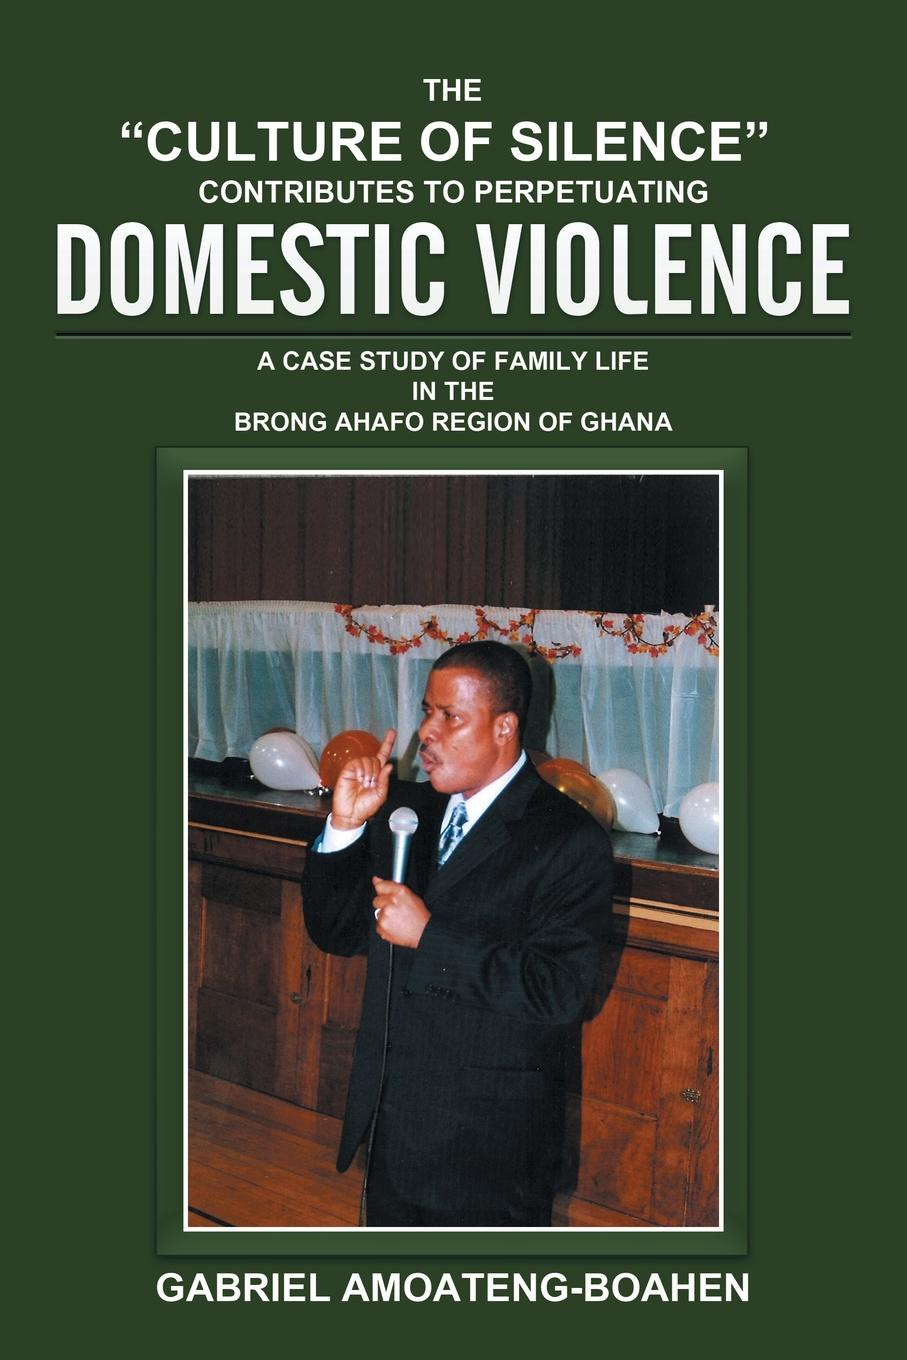 Gabriel Amoateng-Boahen THE CULTURE OF SILENCE CONTRIBUTES TO PERPETUATING DOMESTIC VIOLENCE. A CASE STUDY OF FAMILY LIFE IN THE BRONG AHAFO REGION OF GHANA friendly eastern border the case study of podlaskie voivodship